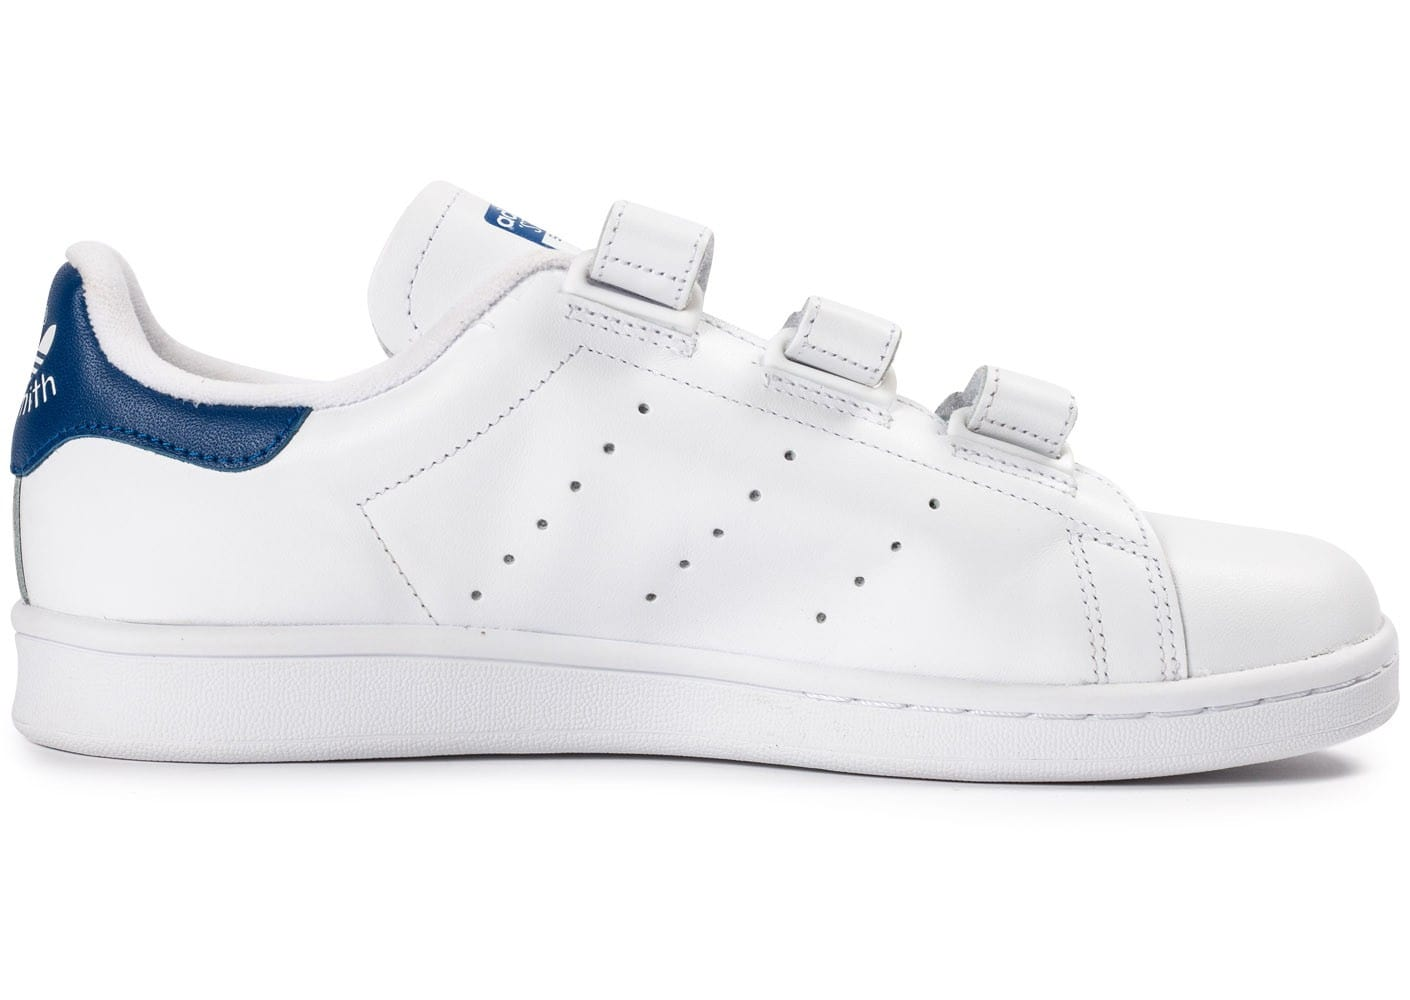 adidas stan smith cf velcro blanc bleu chaussures homme chausport. Black Bedroom Furniture Sets. Home Design Ideas